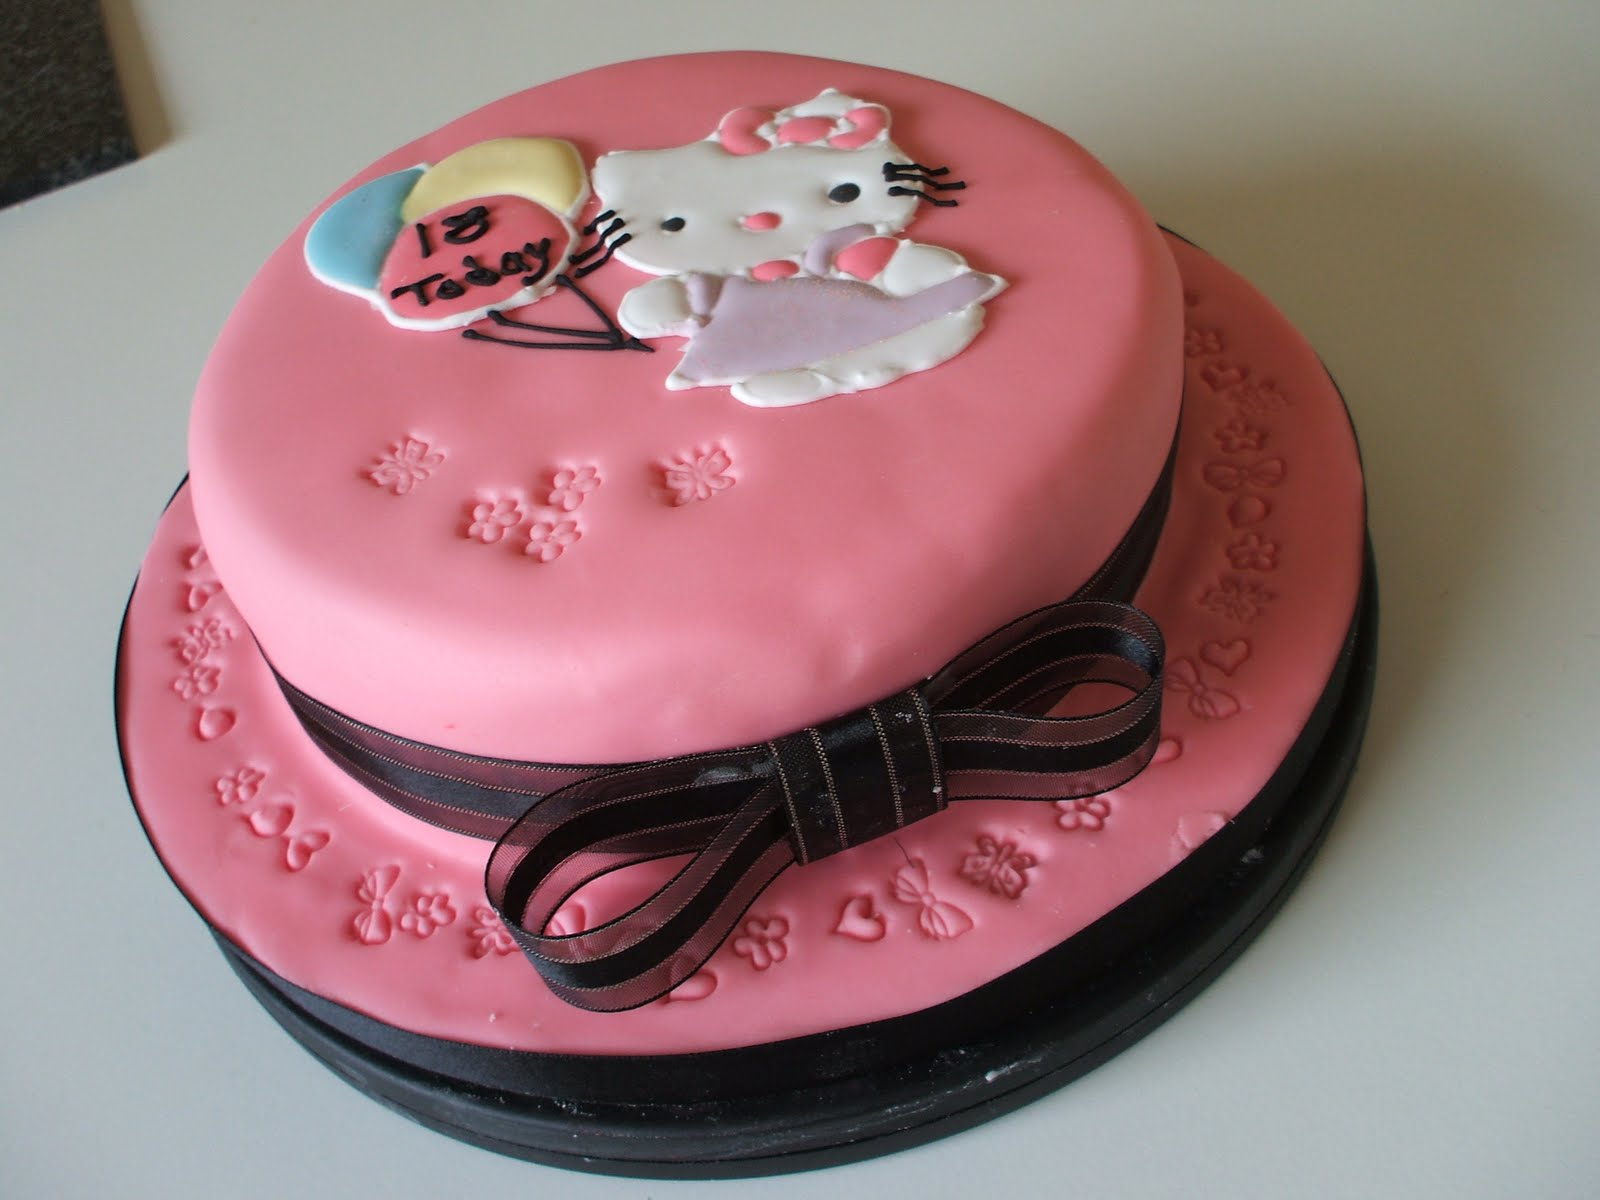 Cake Designs Of Hello Kitty : Hello Kitty Cake Ideas For Your Birthday Parties Food ...